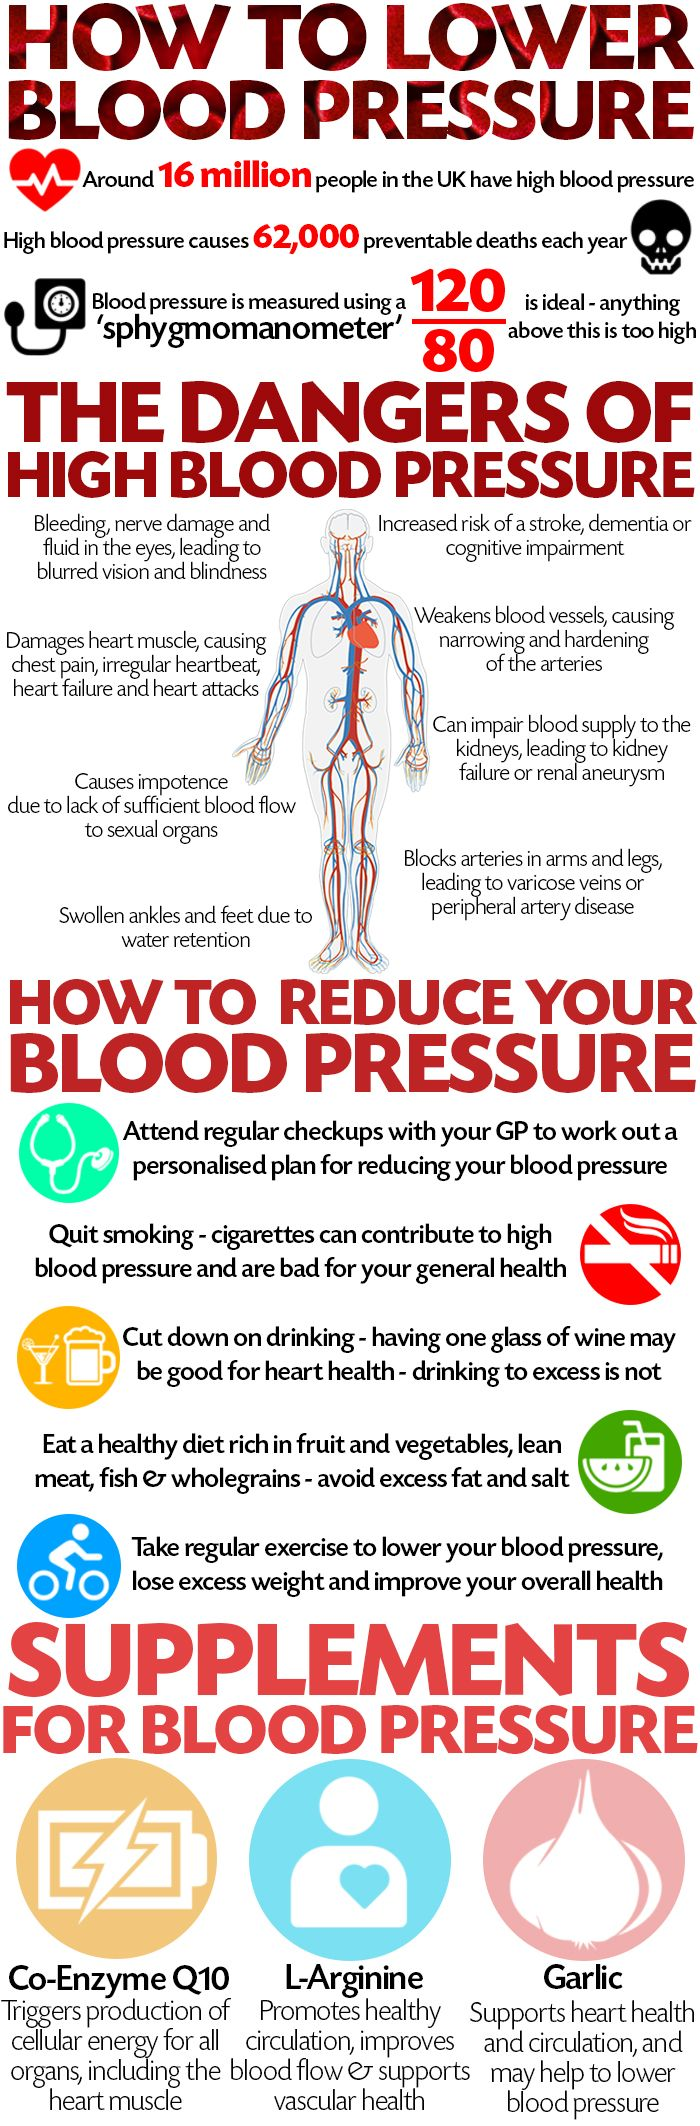 Find out how you can naturally lower your blood pressure with our new infographic! Browse our heart health supplements here: http://bit.ly/HeartHe4lth